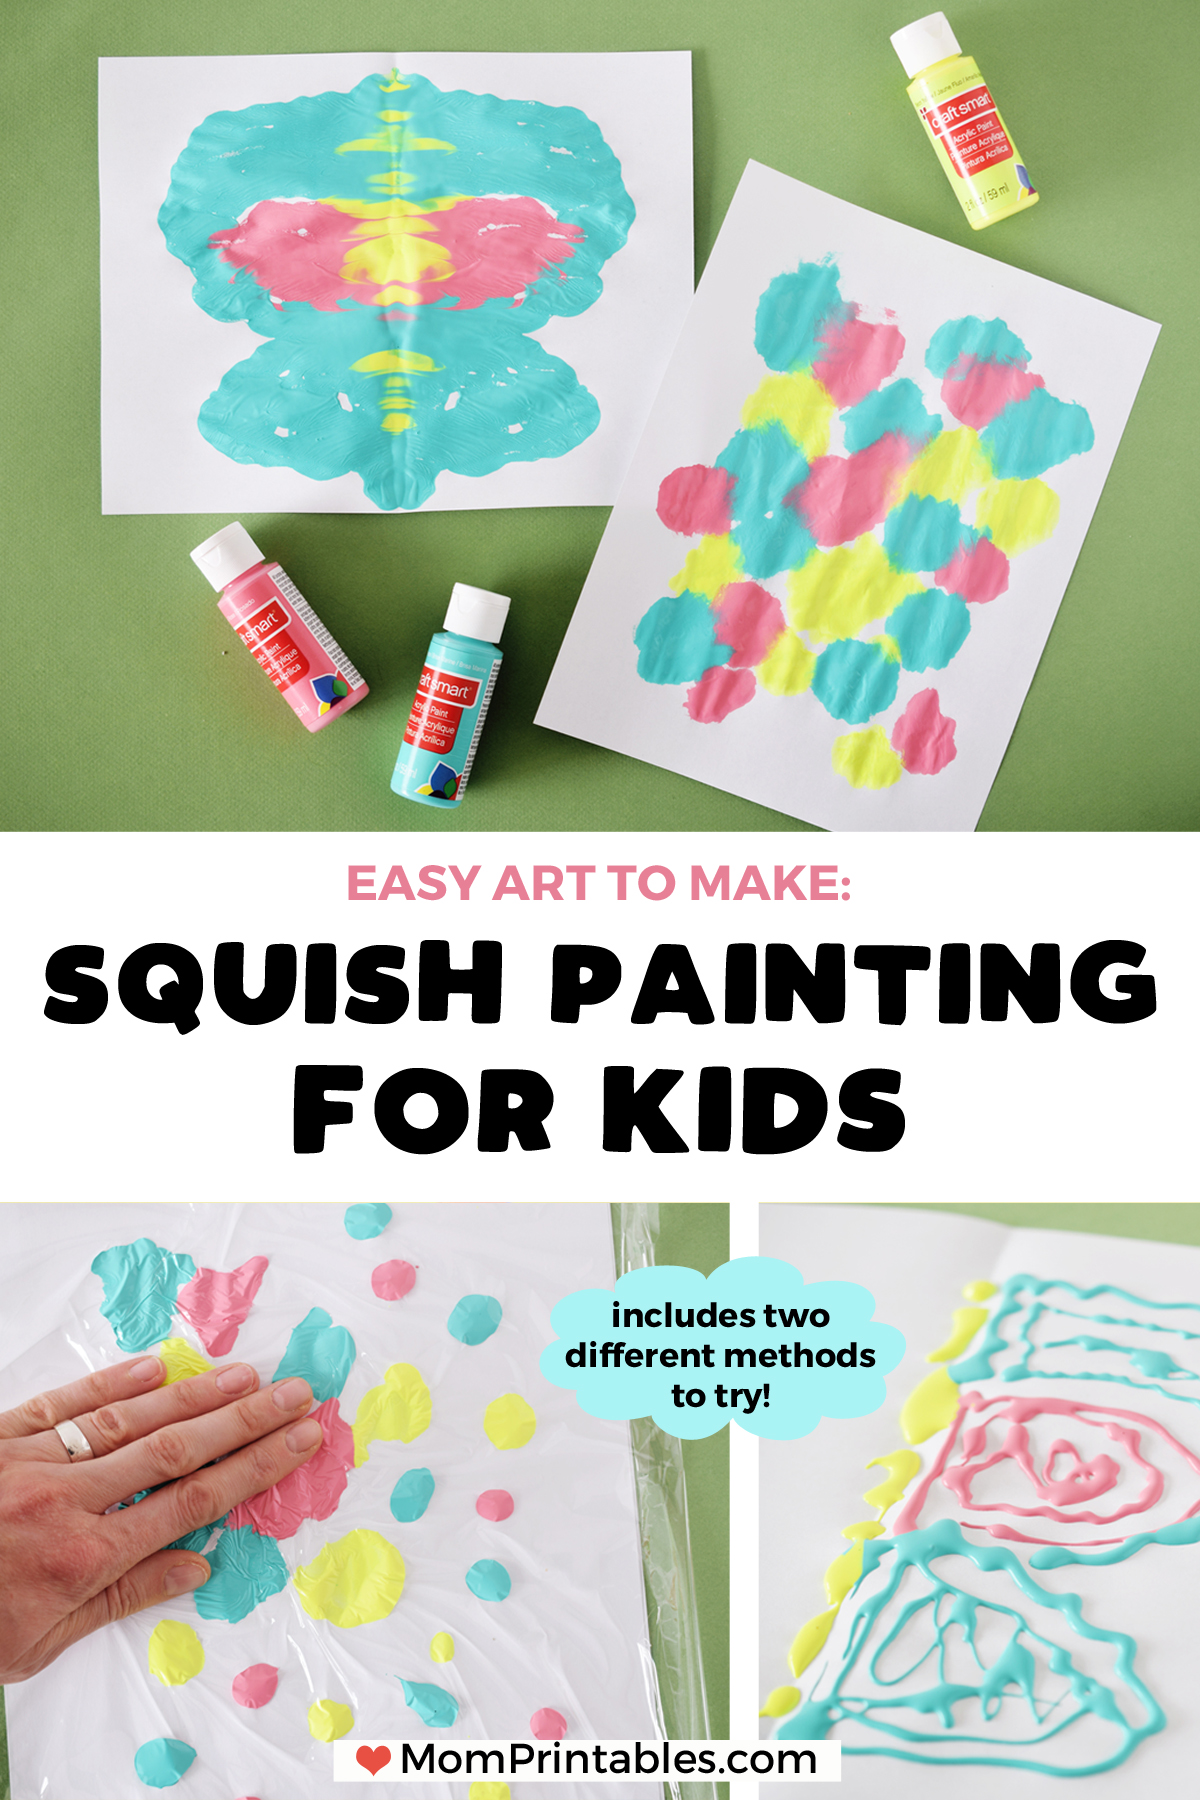 Squish Painting and Butterfly Symmetry Painting for kids | Preschool ideas | for kids | fun | papillons | nature | mirror image #kidsart #symmetry #art #butterfly